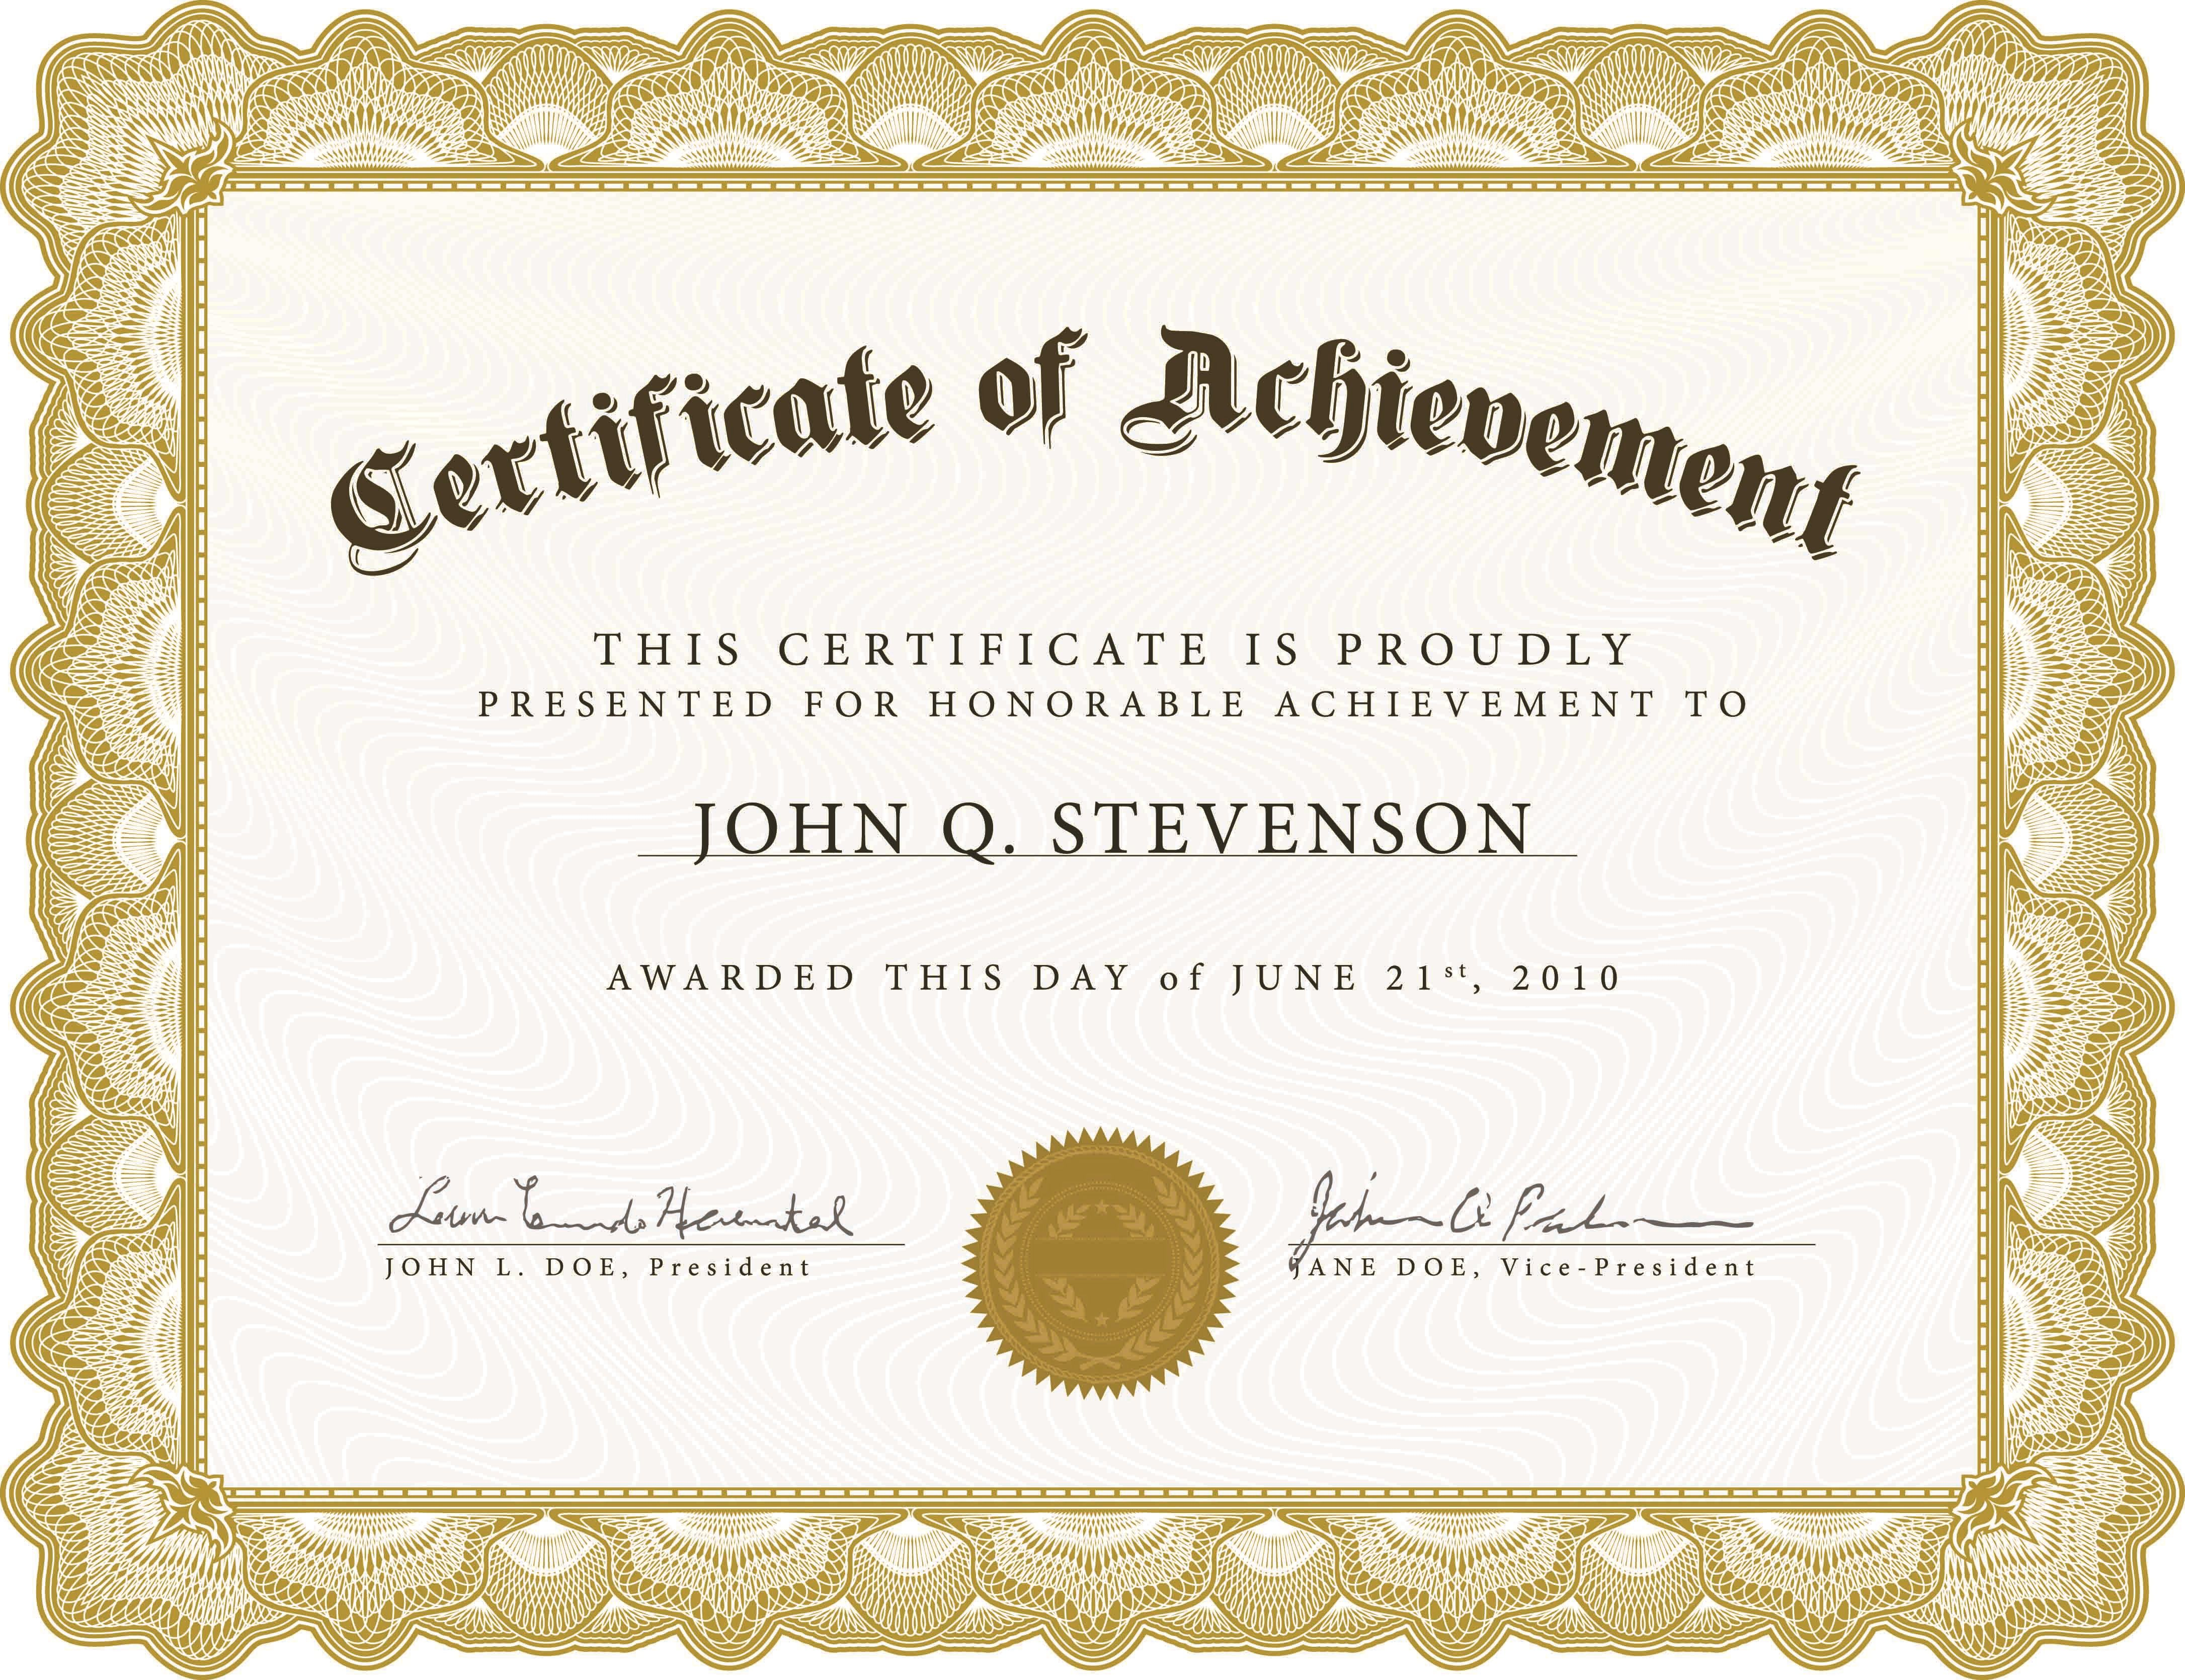 005 Exceptional Certificate Of Award Template Word Free Photo Full